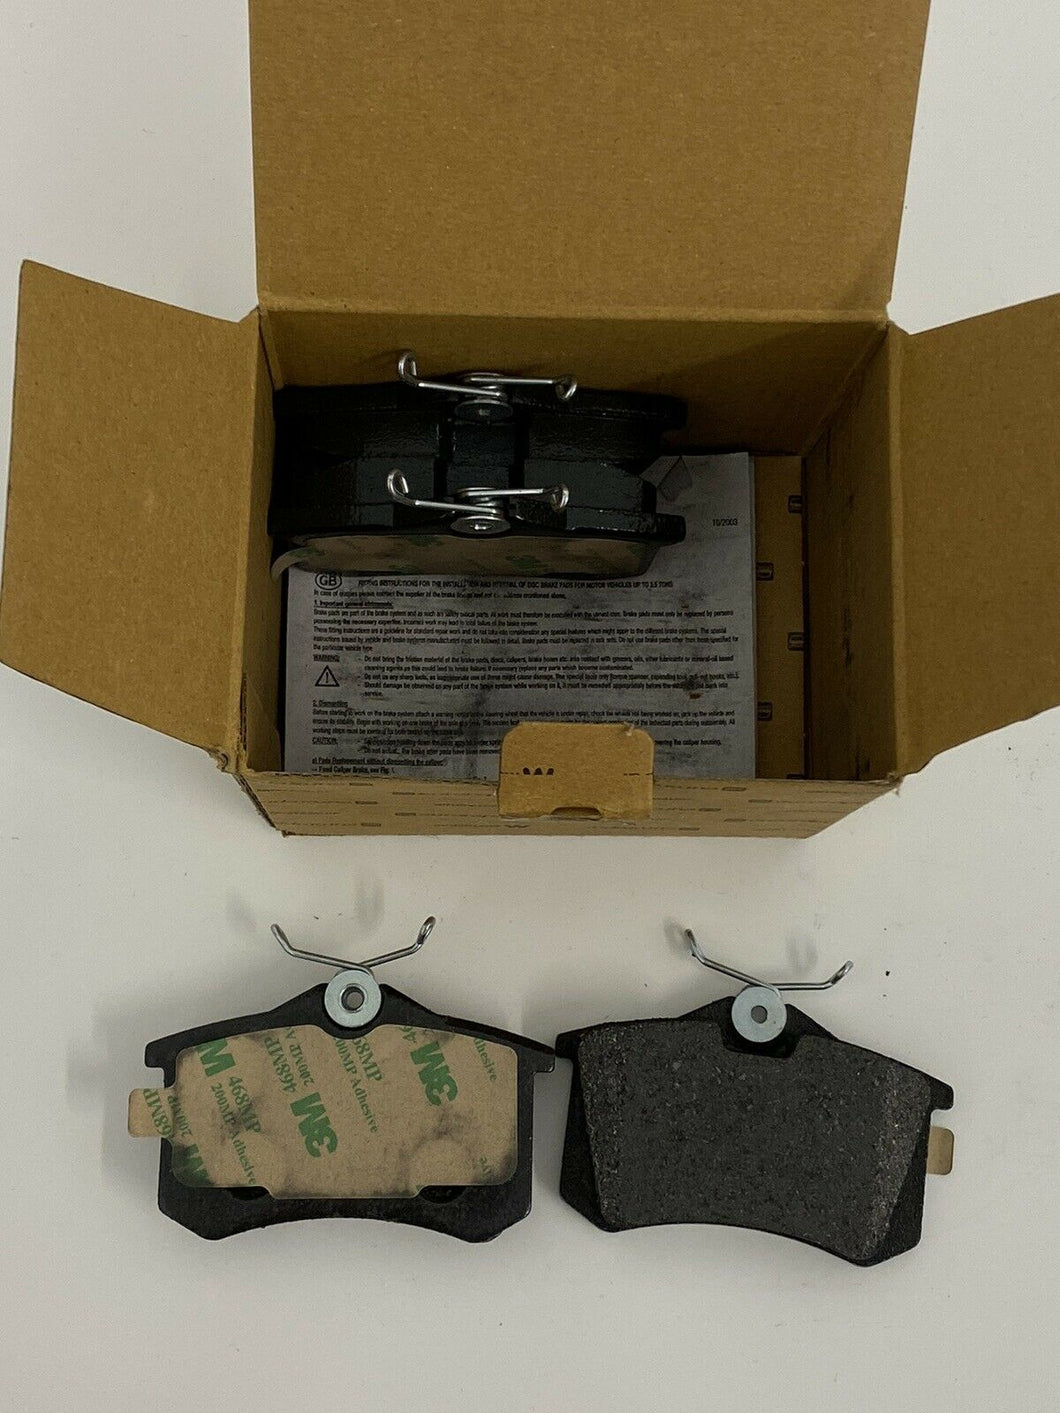 Genuine Eurorepar Citreon Brake Pad set 1609252880